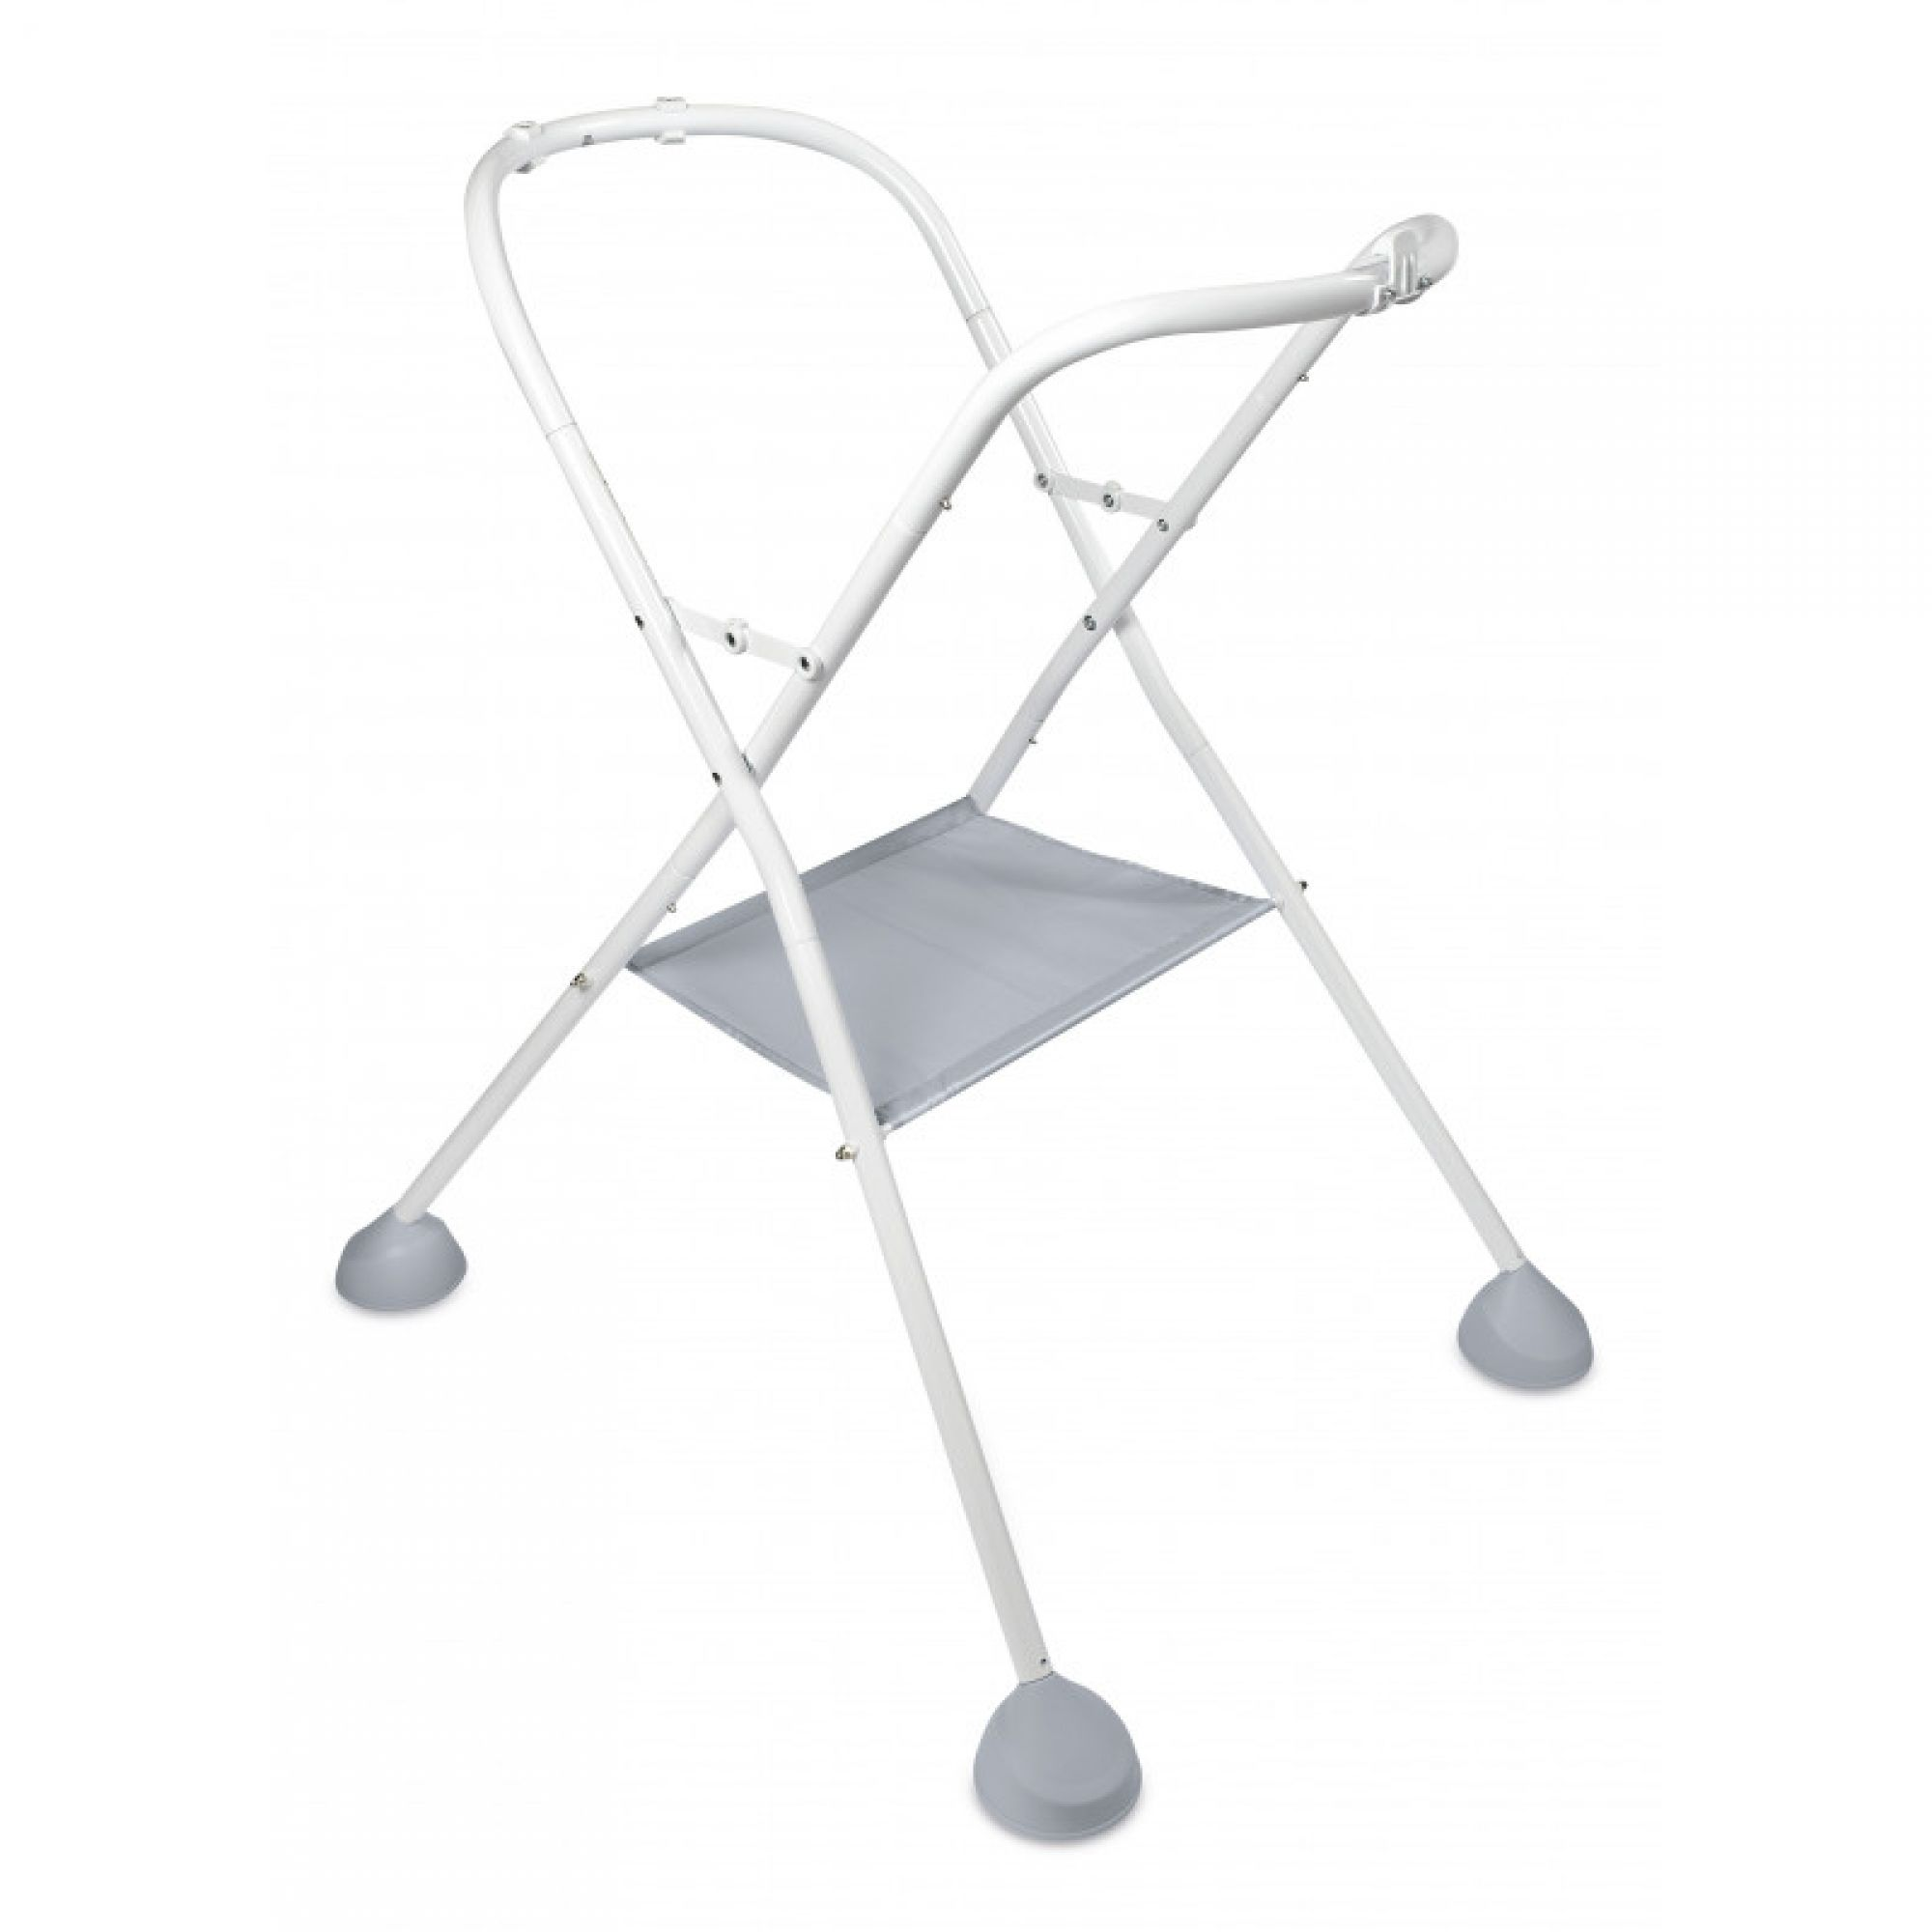 Beaba Support A Pied Pour Baignoire Bebe Camele O Light Mist Made In Bebe